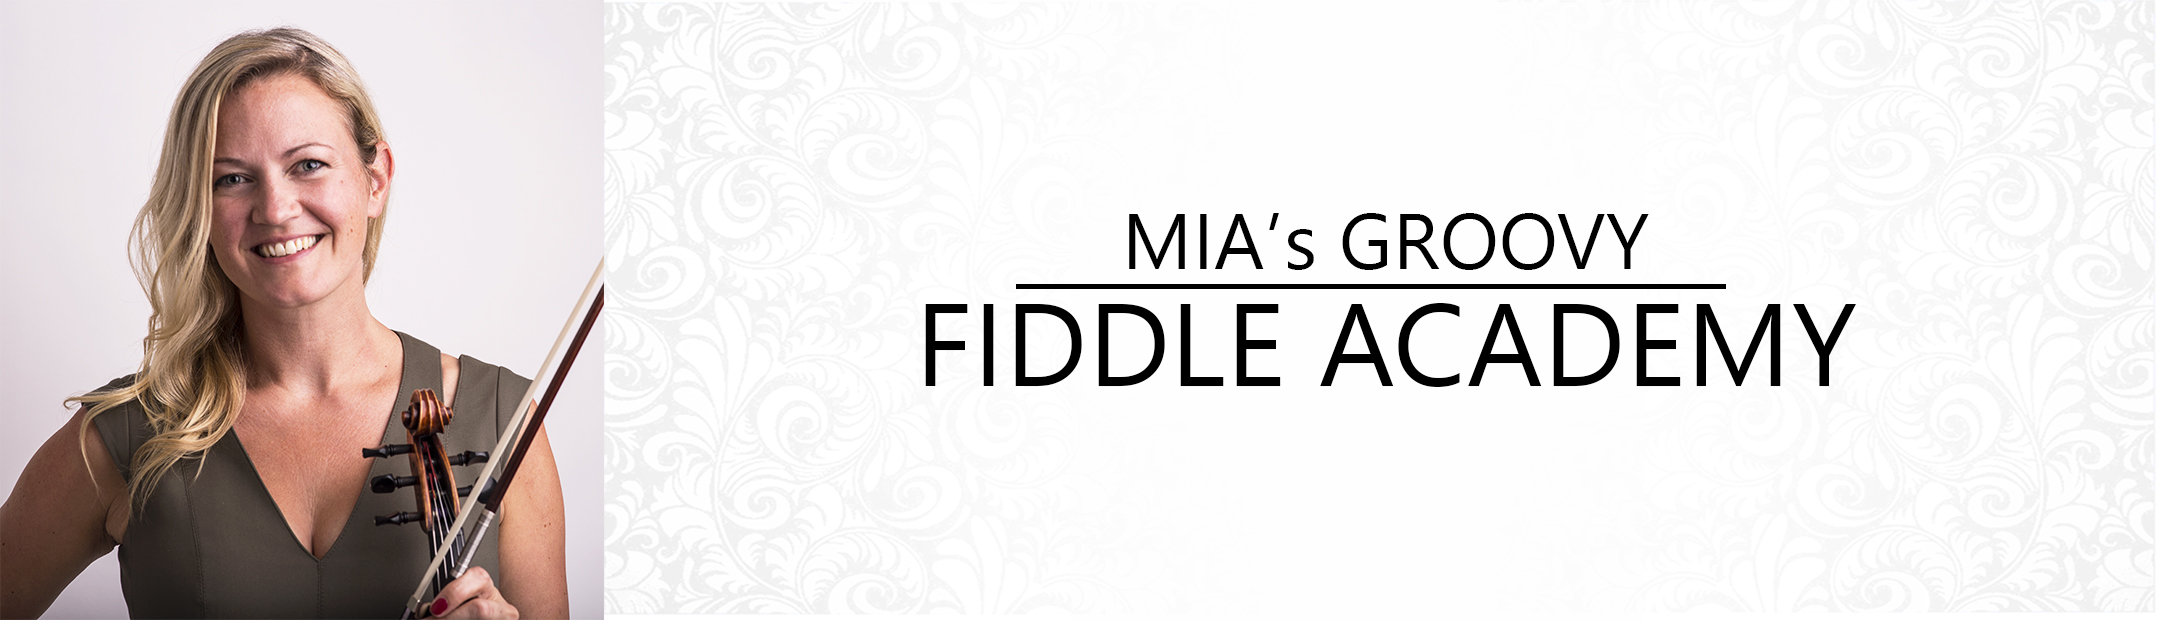 Fiddle Academy